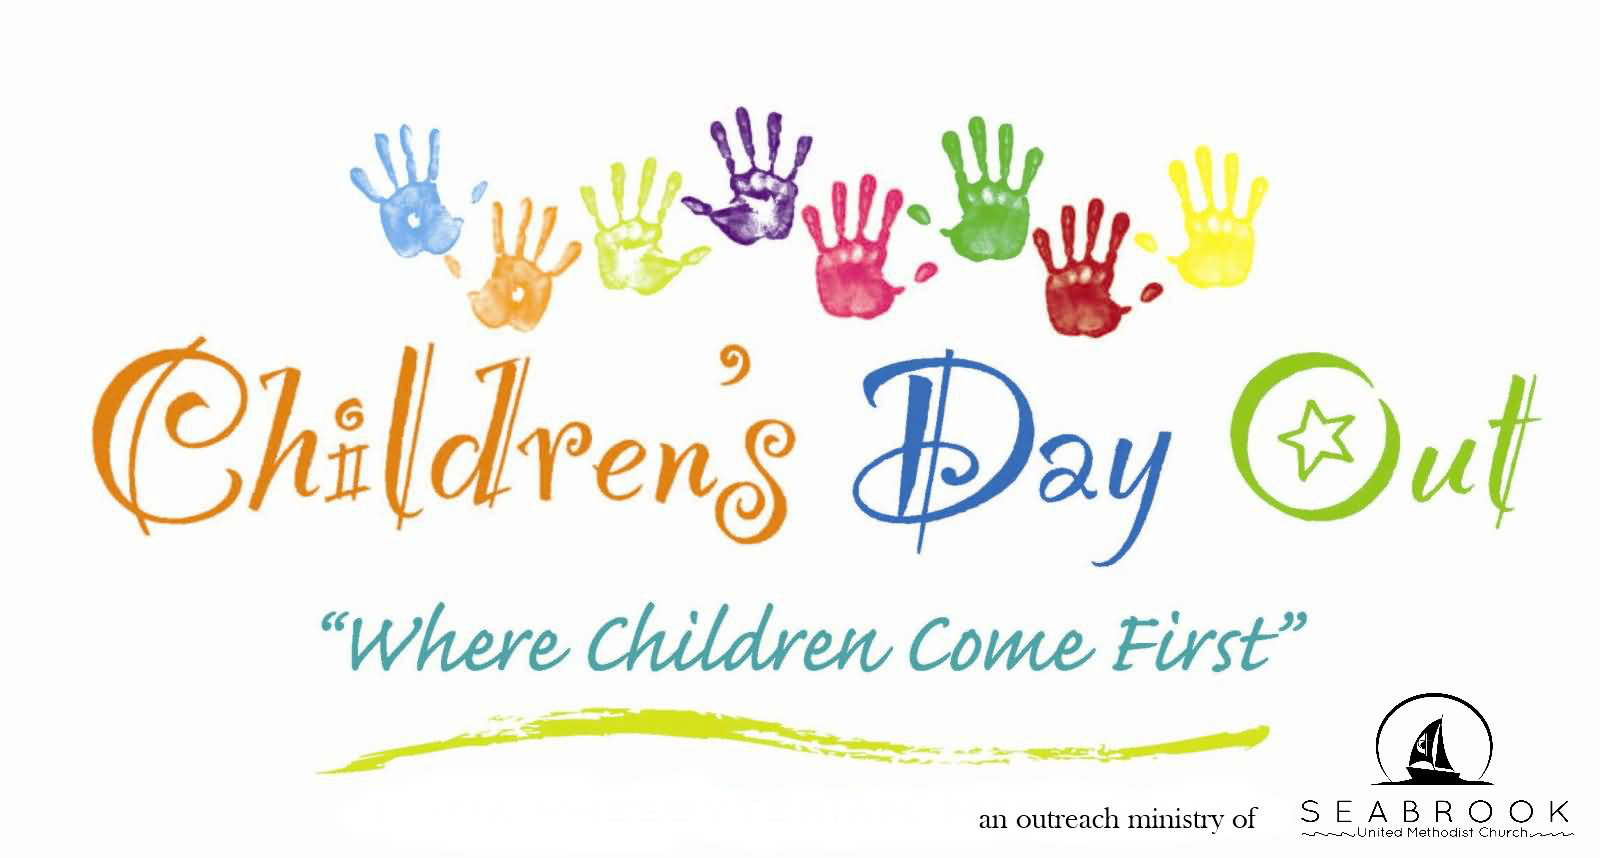 Childrens Day in 2019